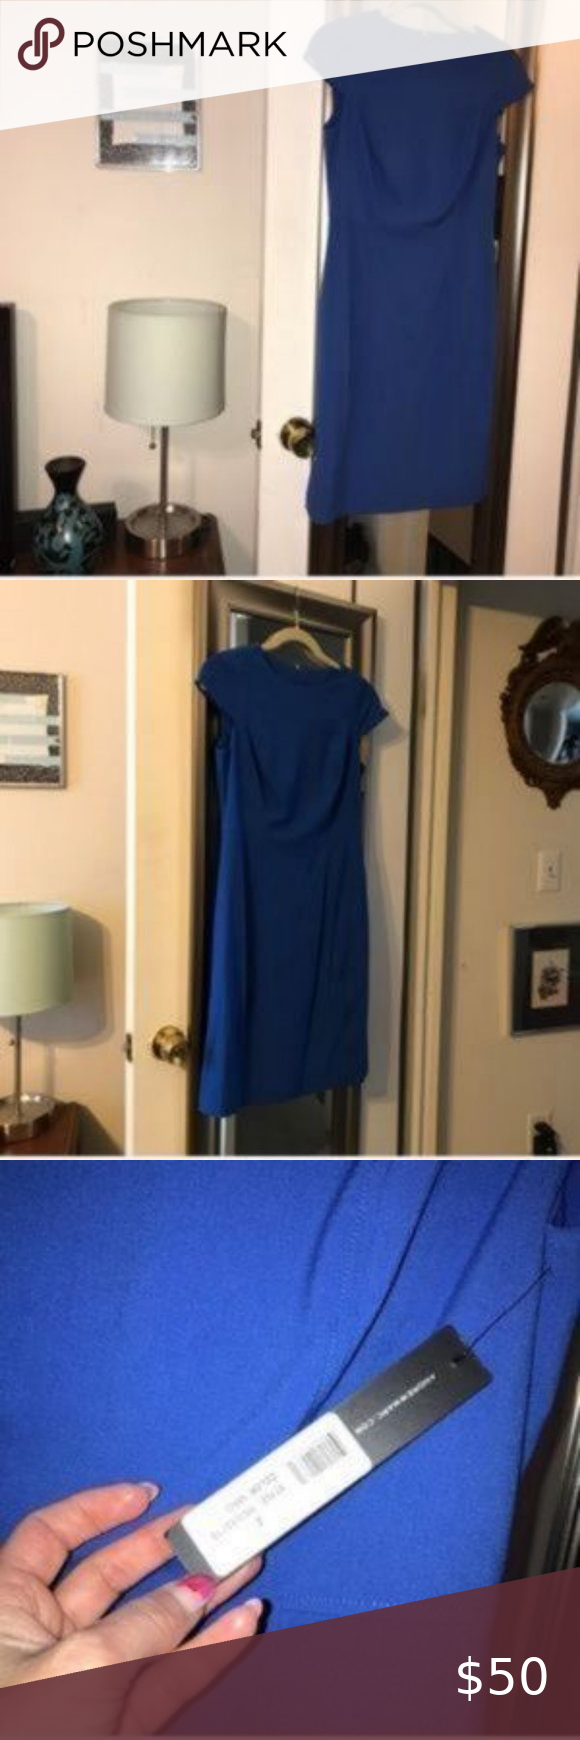 Marc Ny Andrew Marc Blue Cap Sleeve Dress Size 2 Marc Ny Andrew Marc Blue Cap Sleeve Dress Sz 2 Color Royal B In 2020 Capped Sleeve Dress Marc Dress Royal Blue Color